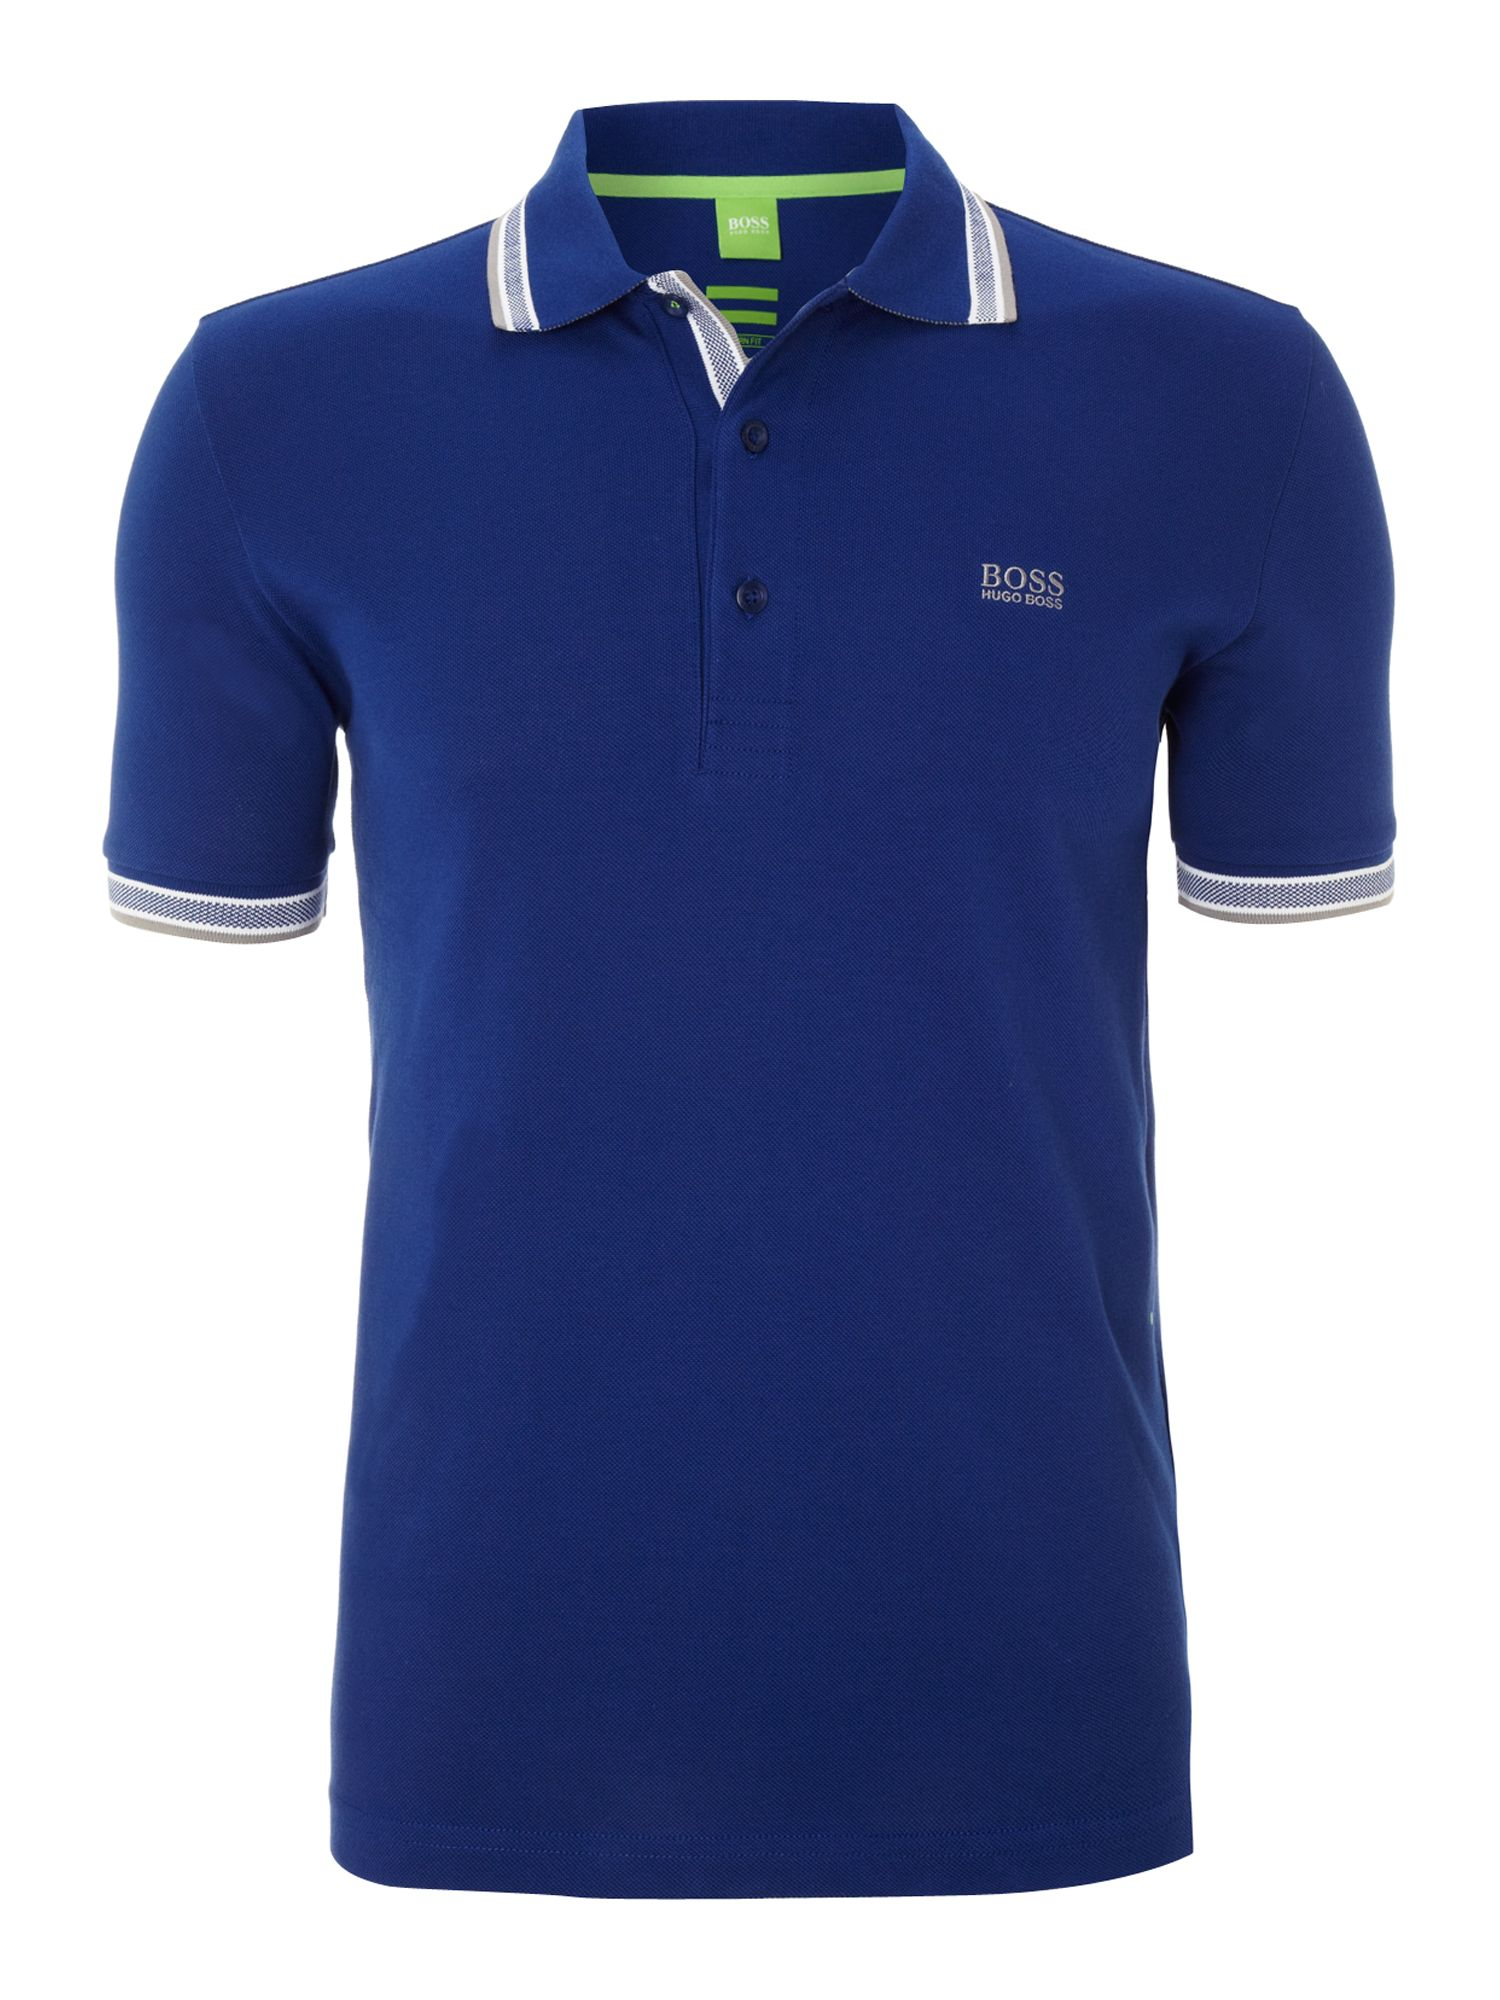 hugo boss classic logo tipped detail polo shirt in blue. Black Bedroom Furniture Sets. Home Design Ideas